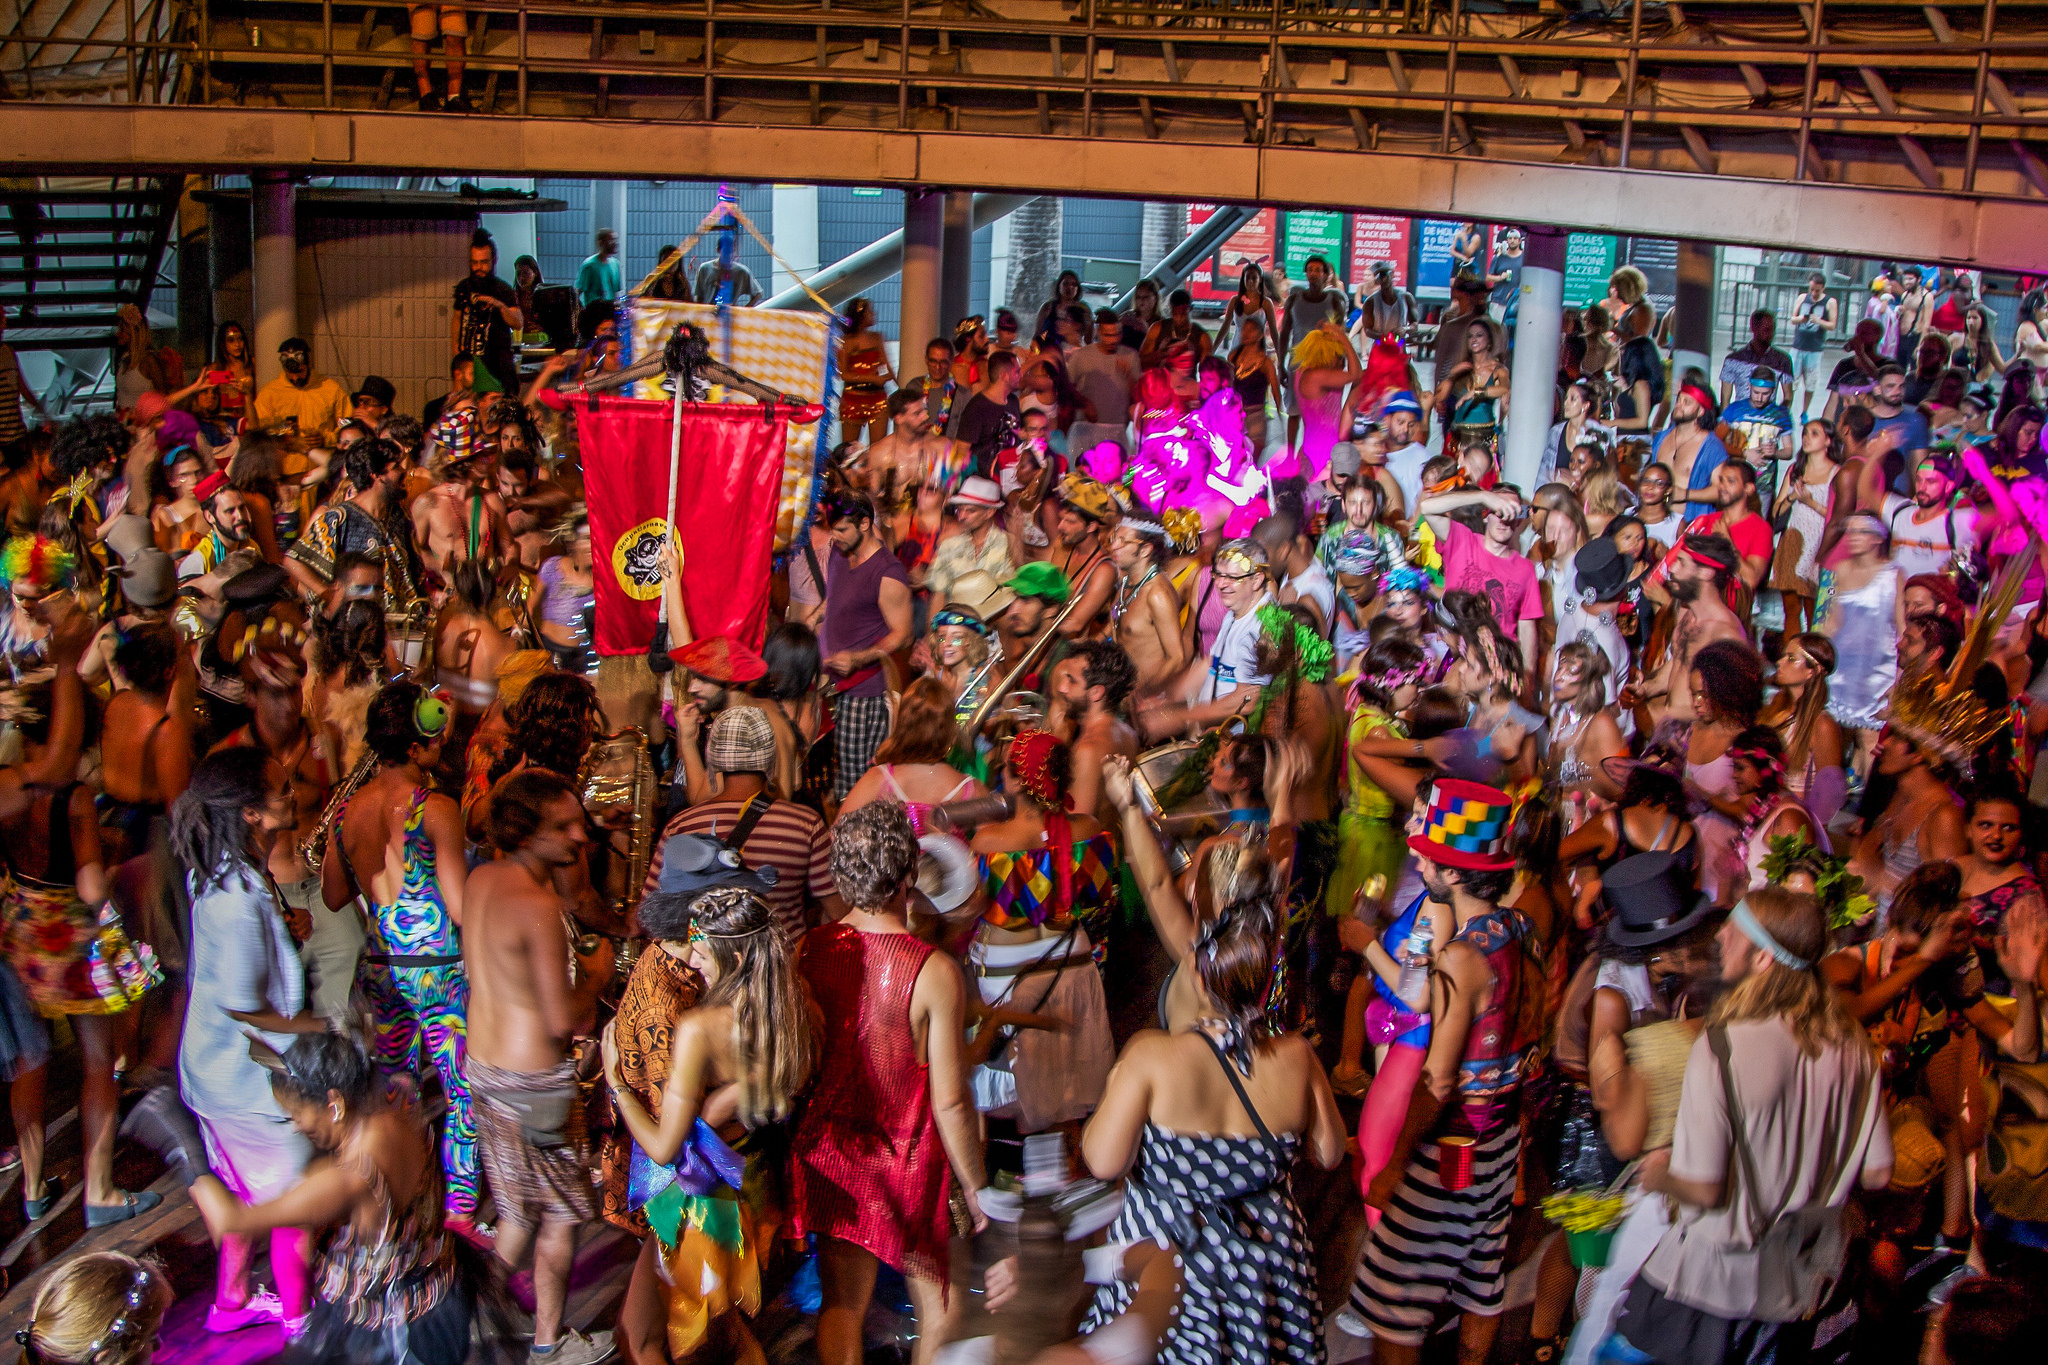 The Ultimate Guide to the Nightlife in Rio de Janeiro